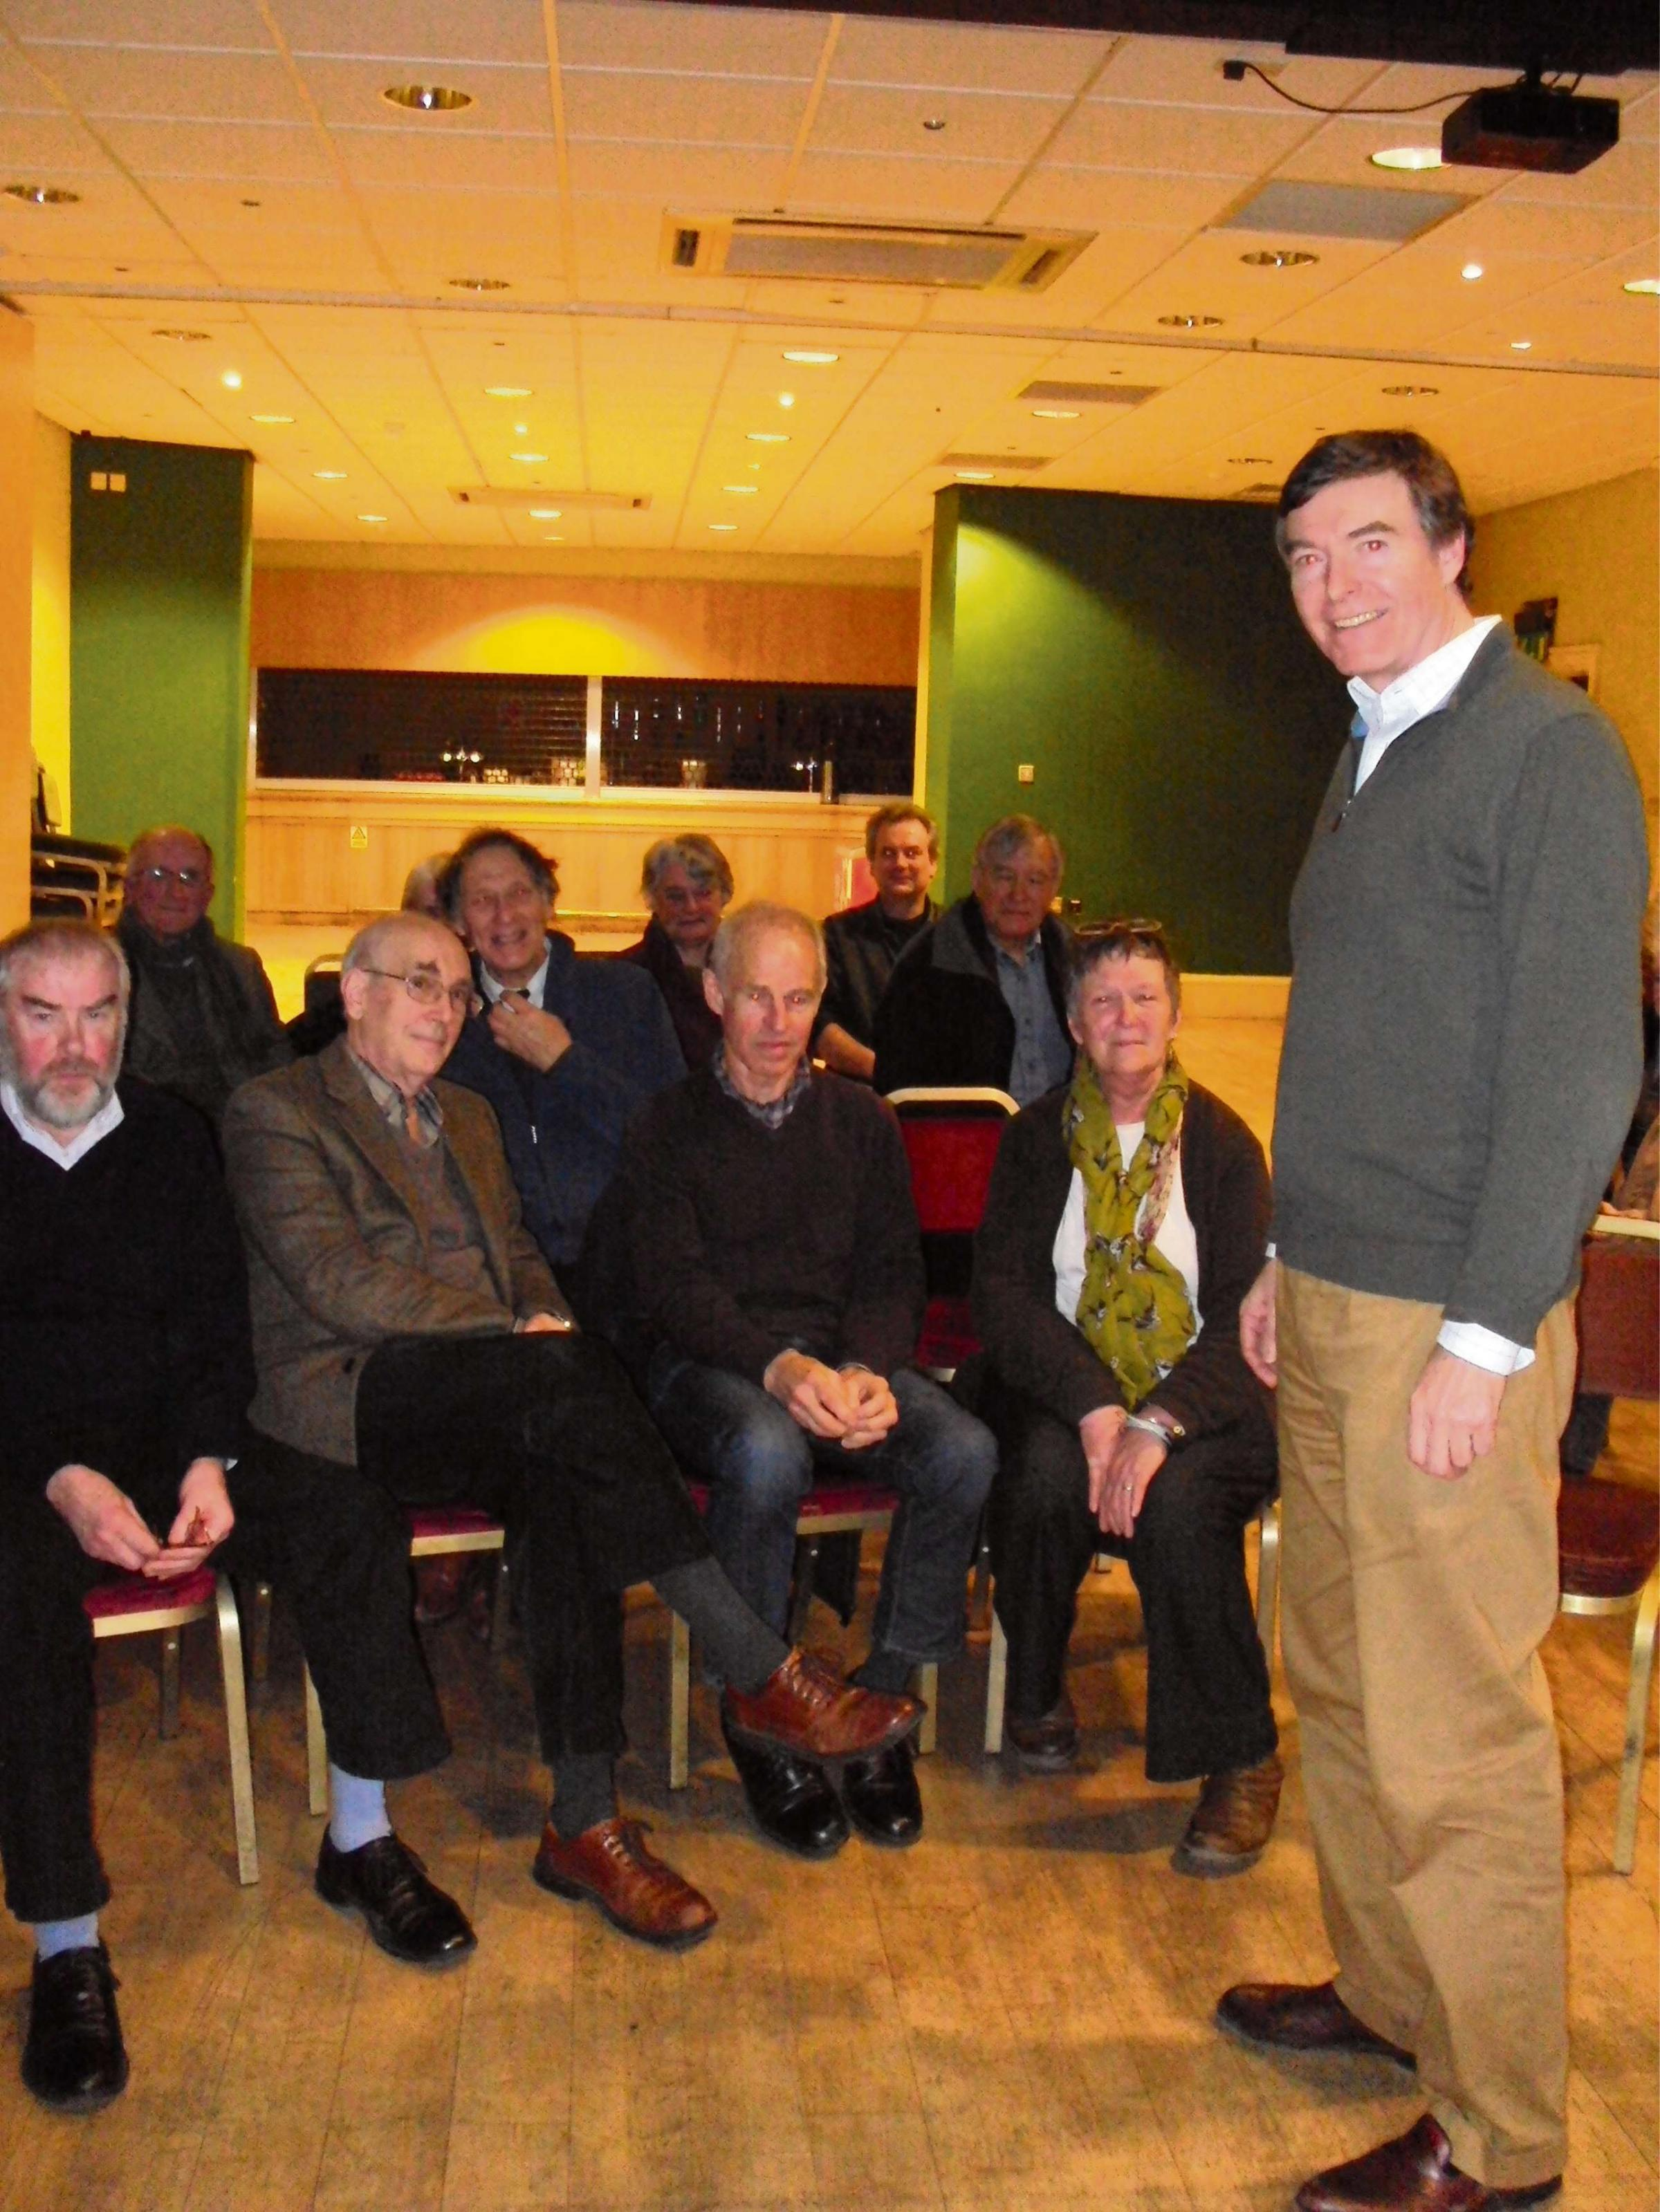 Philip Dunne MP speaking to the local Amnesty group in Ludlow.